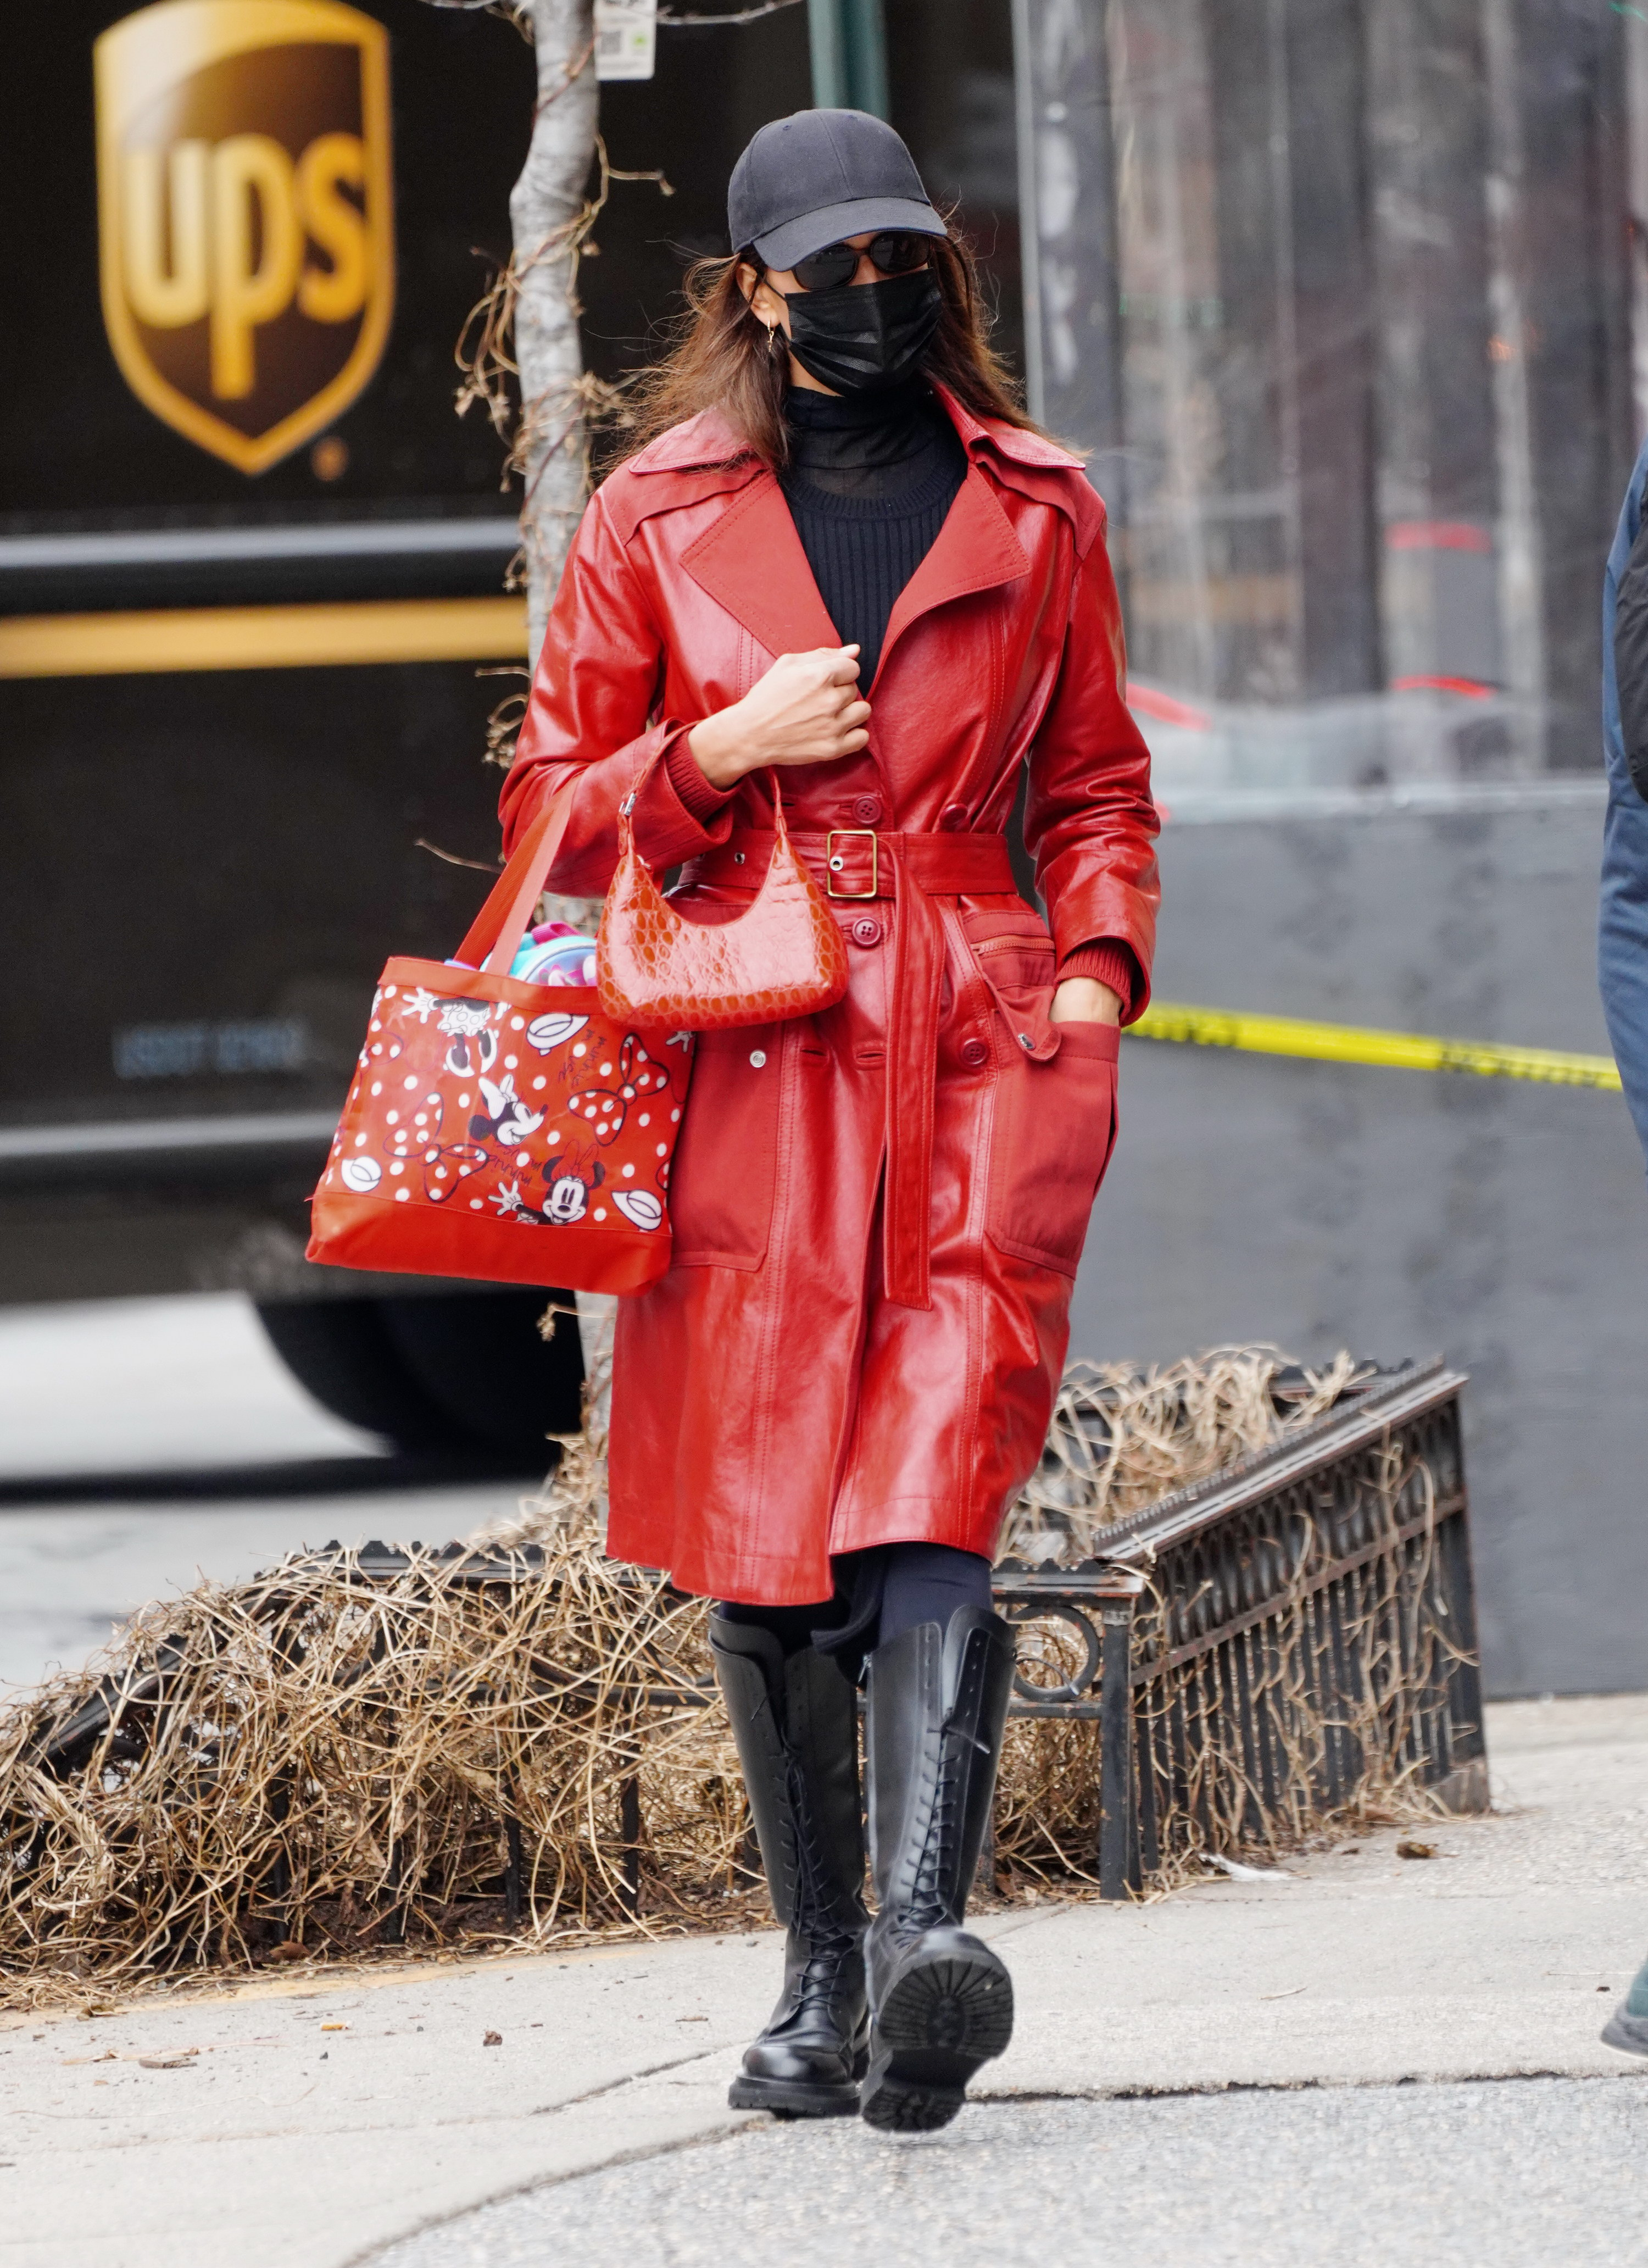 Irina Shayk out and about in a leather trench in New York. 27 Jan 2021 Pictured: Irina Shayk. Photo credit: MEGA TheMegaAgency.com +1 888 505 6342 (Mega Agency TagID: MEGA729520_004.jpg) [Photo via Mega Agency]